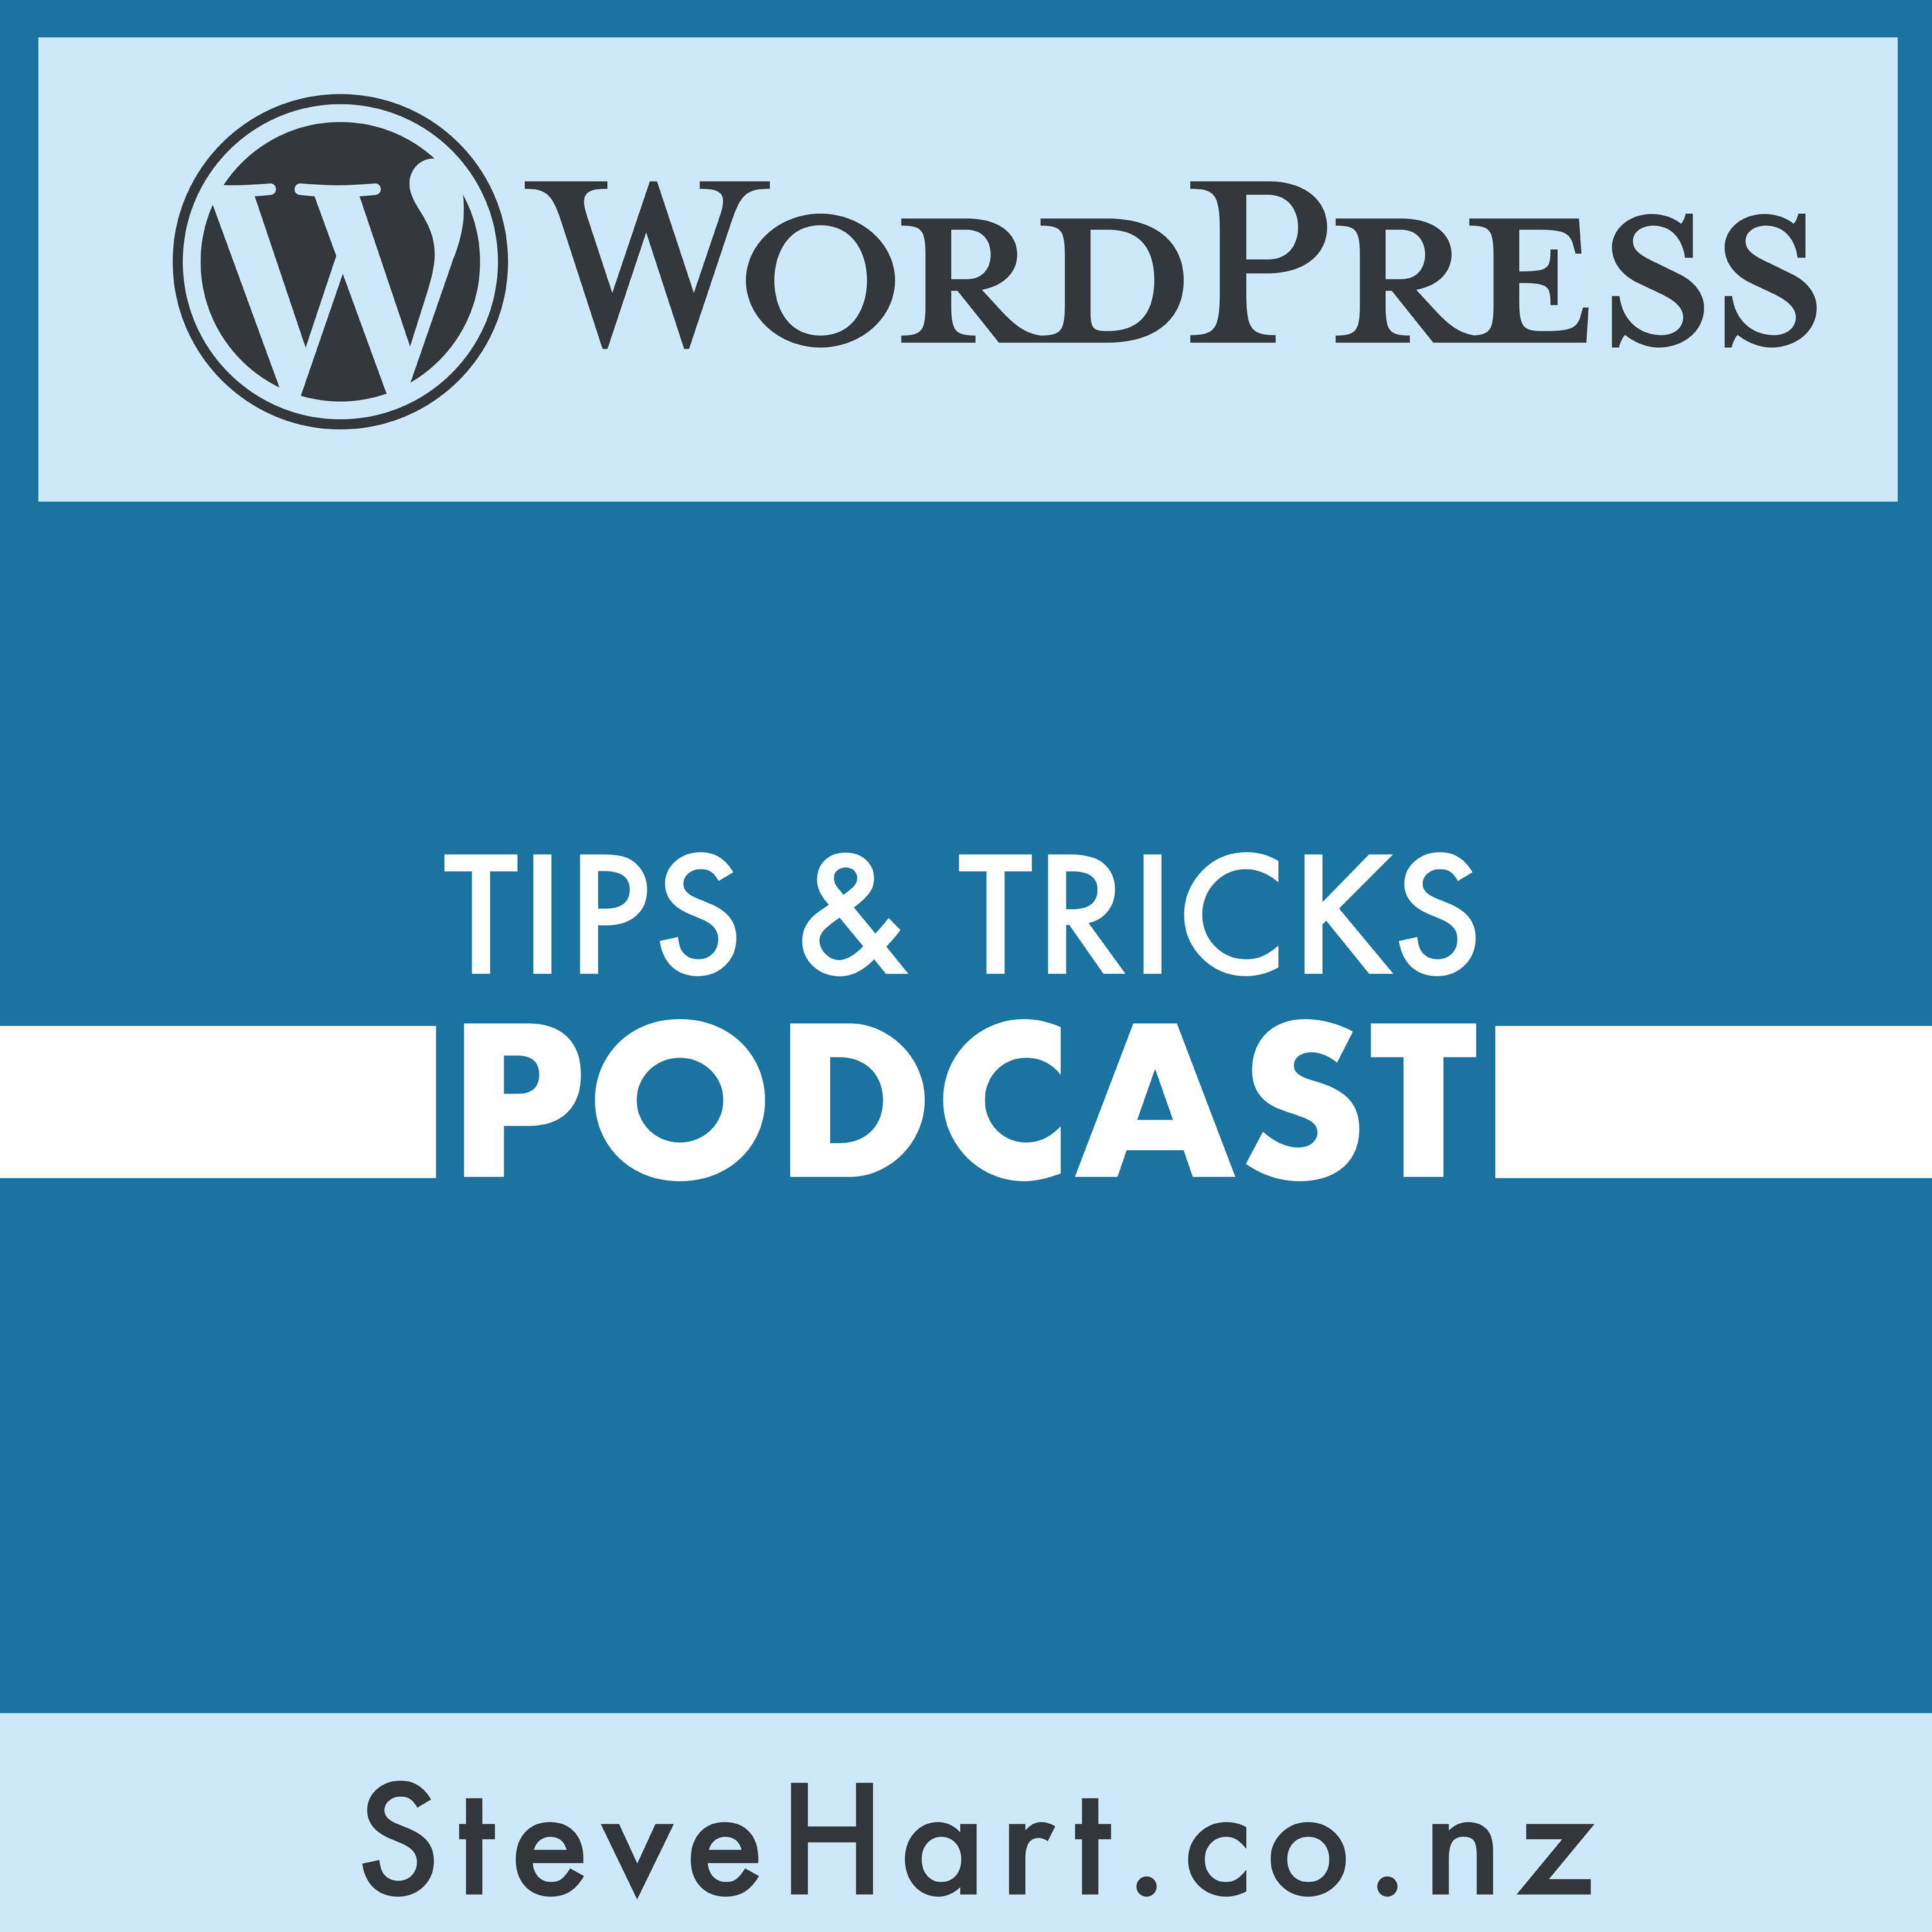 60 Mailchimp For Contact Form 7 Wordpress Tips And Tricks Podcast Podtail